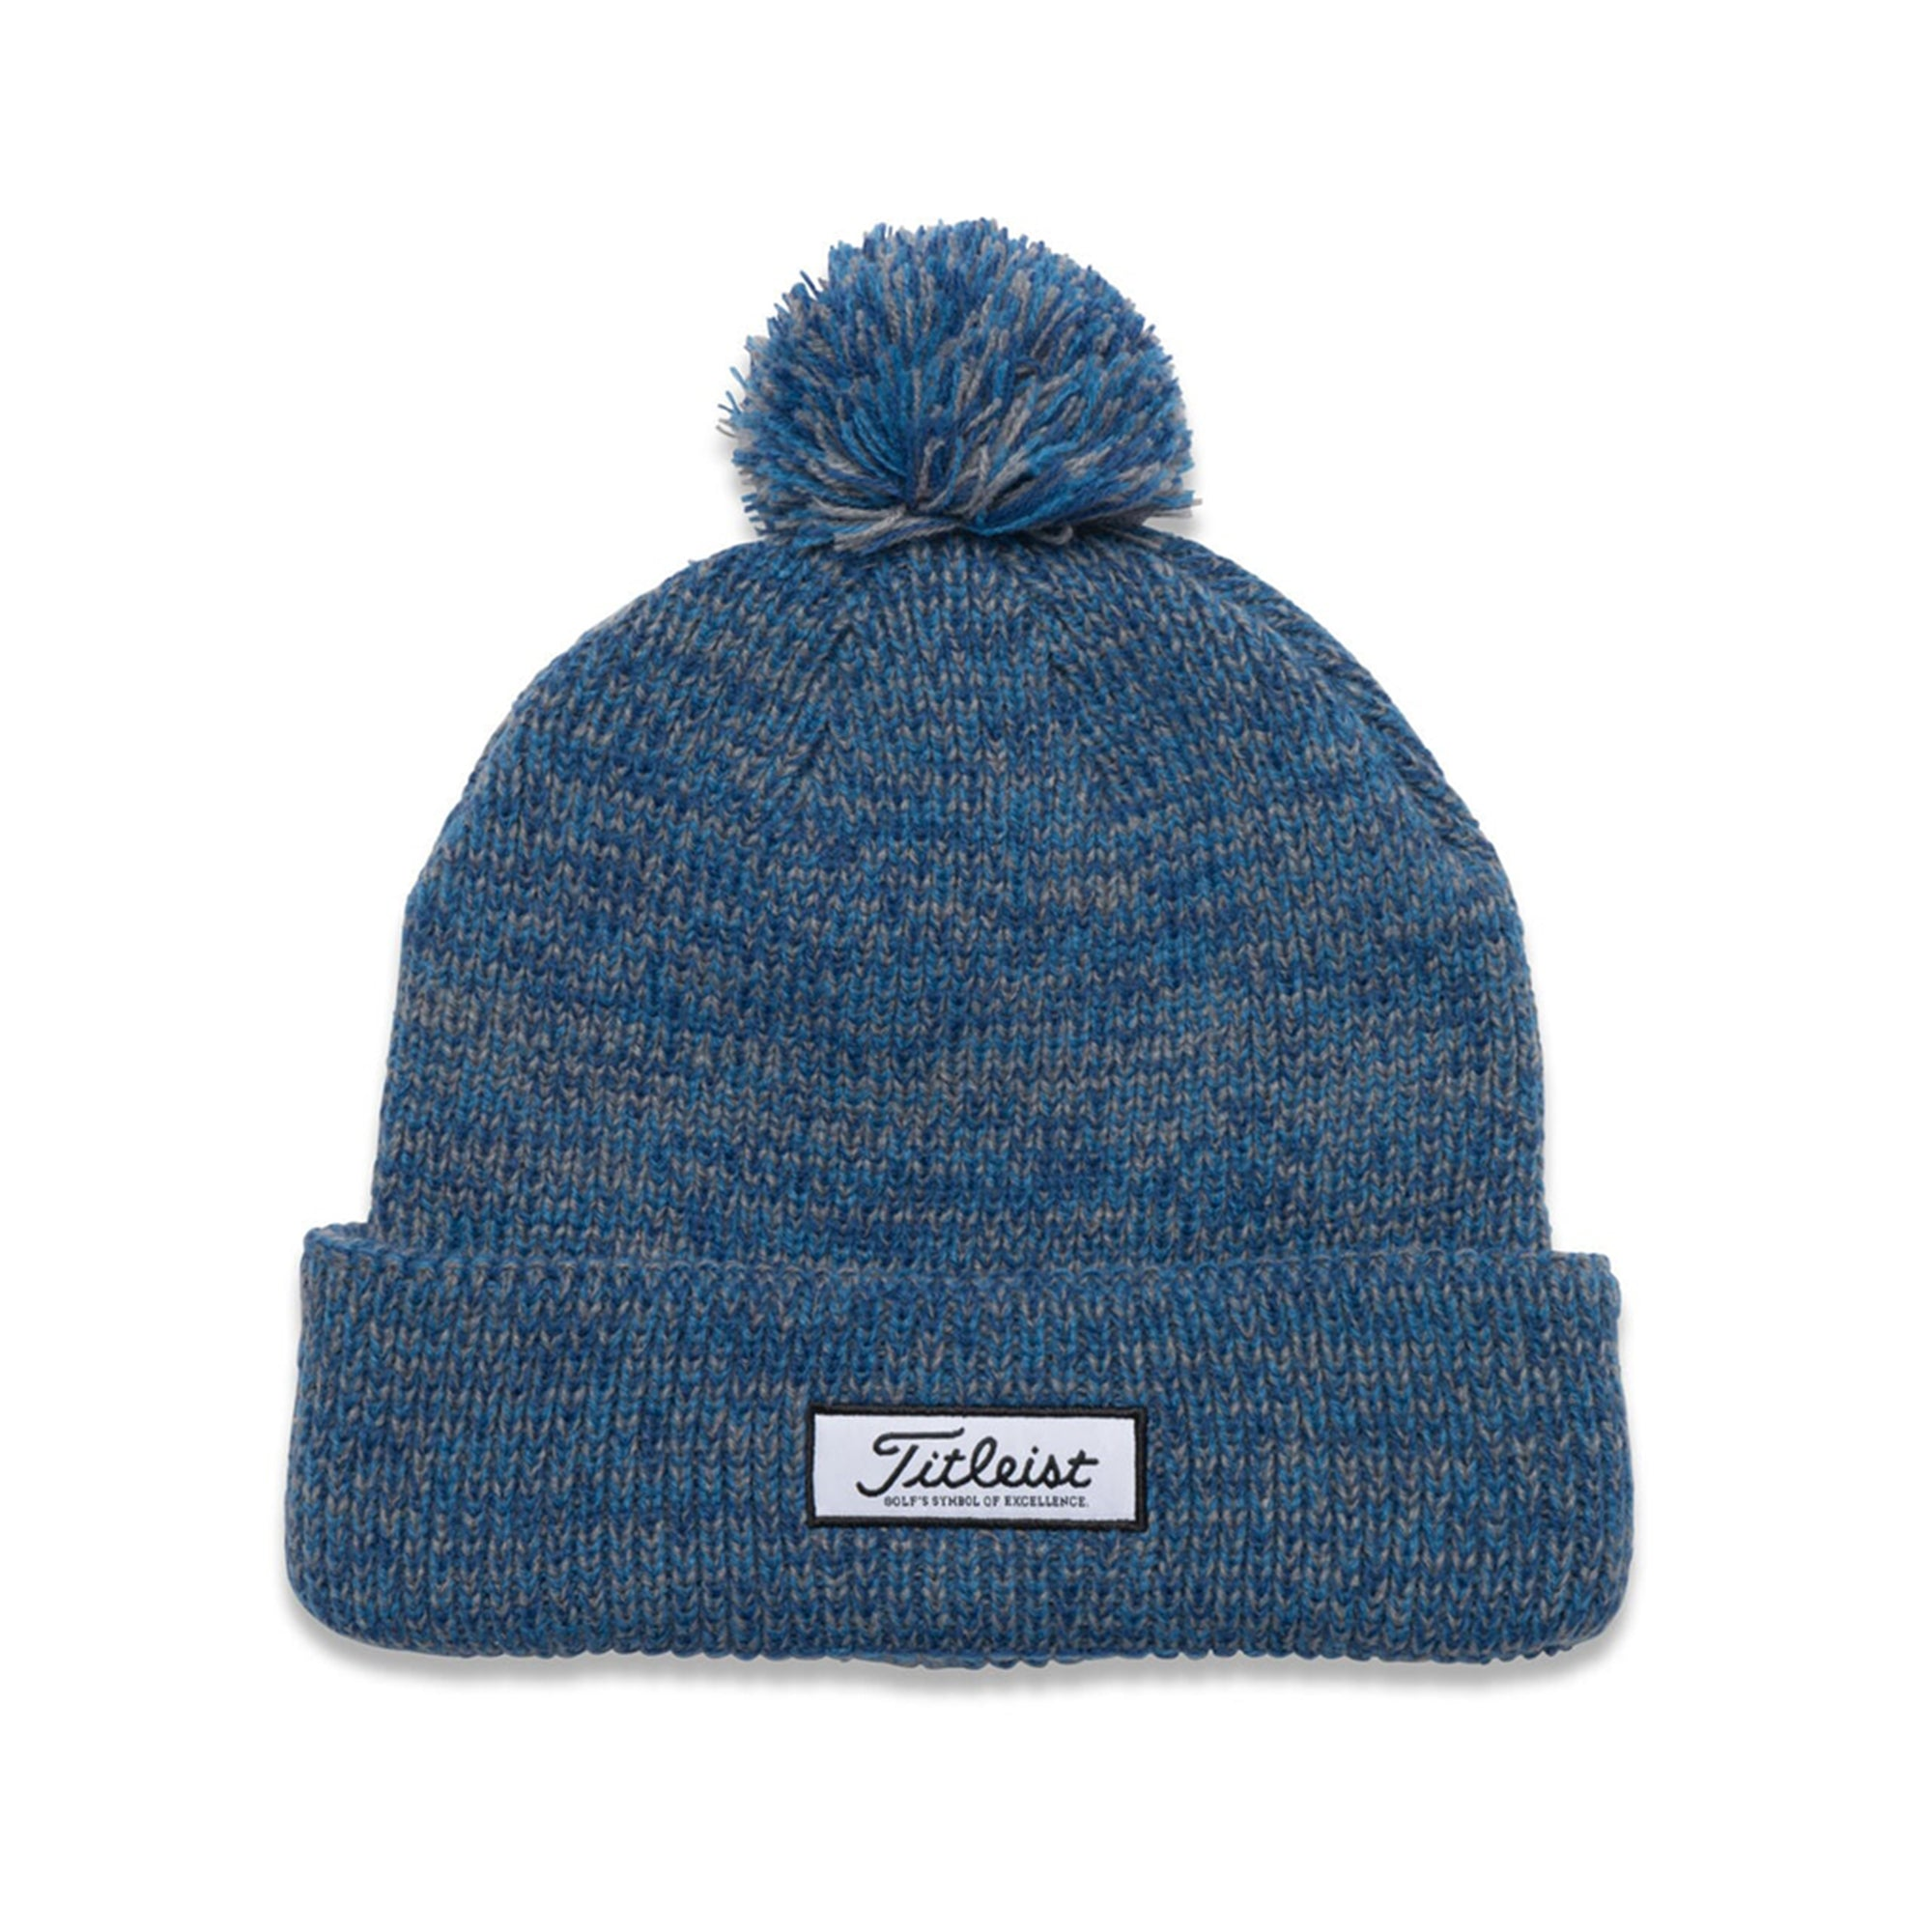 Titleist Lifestyle Heather Pom Beanie